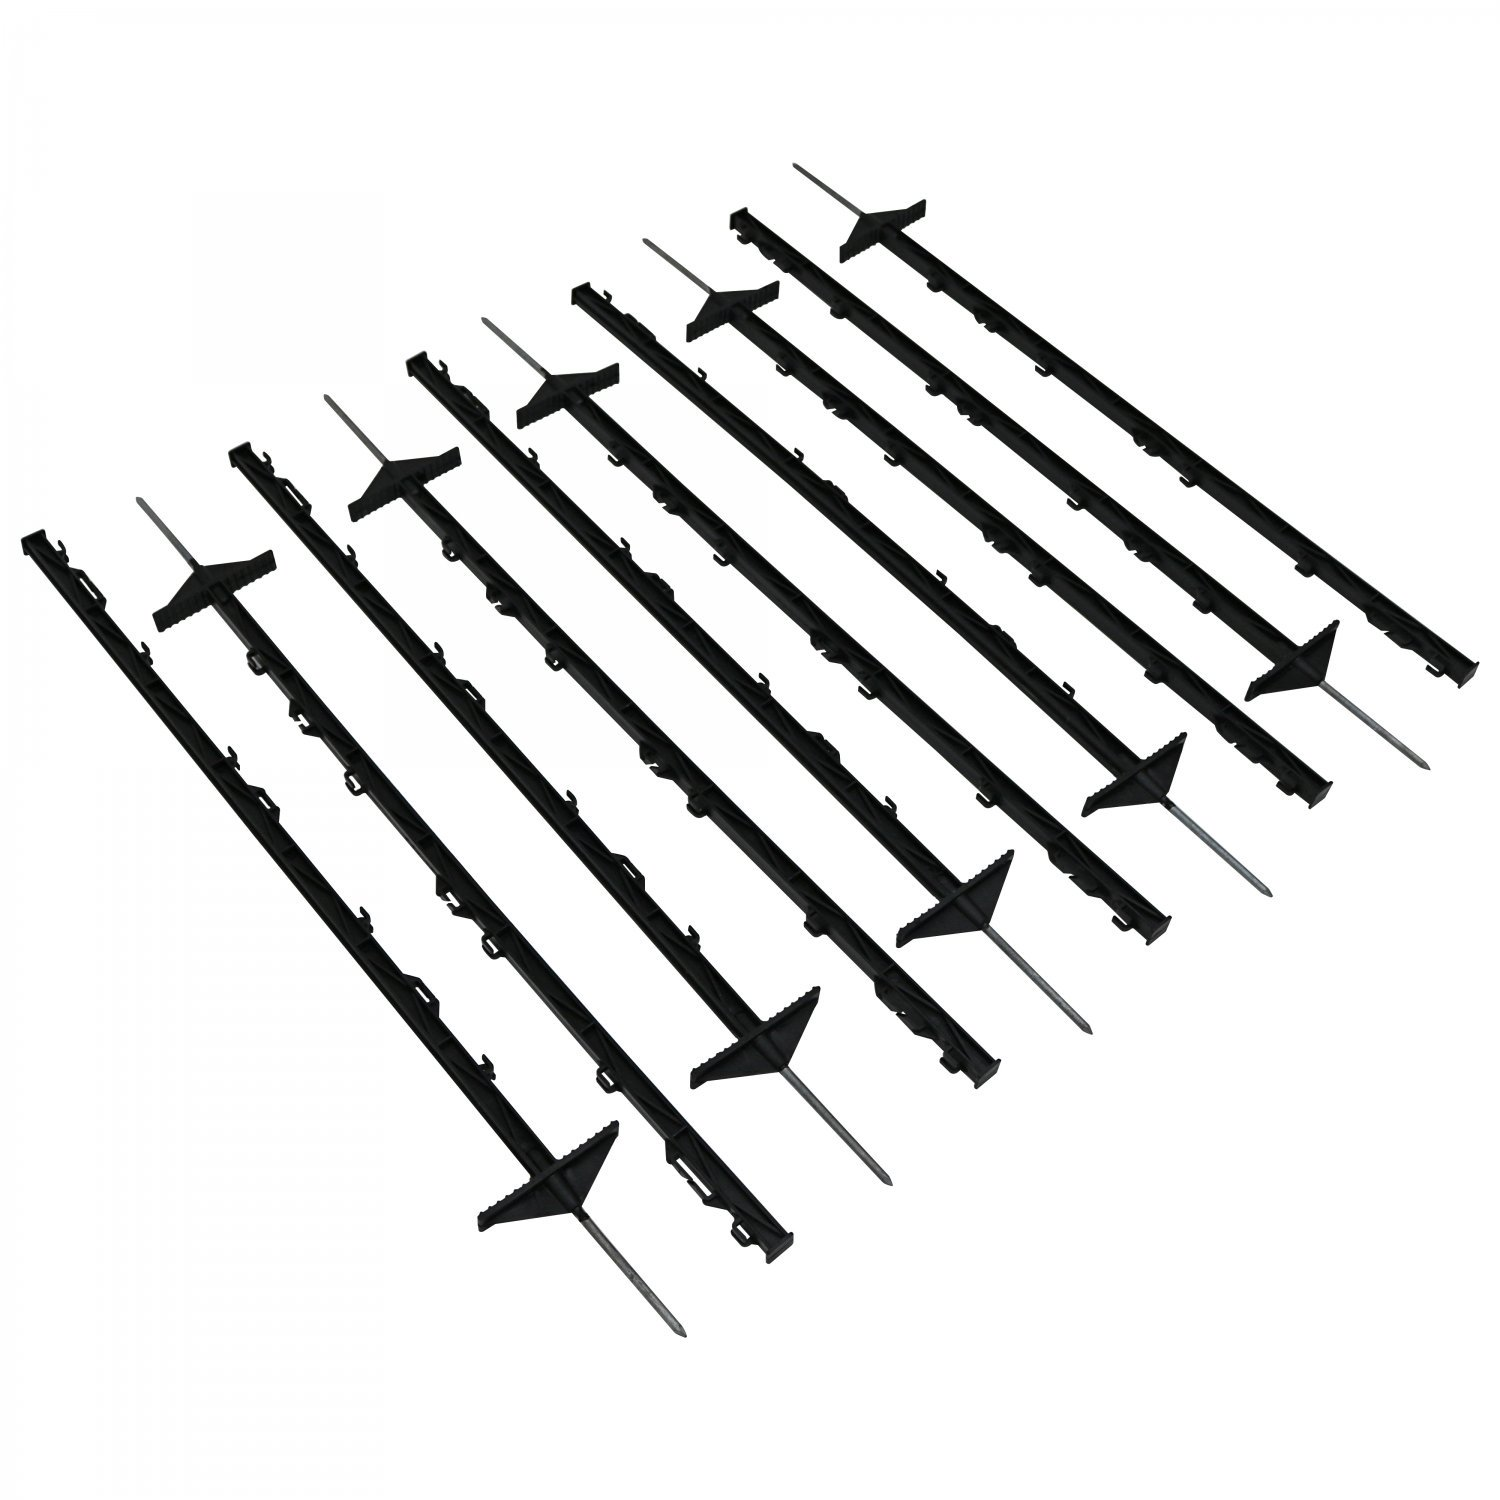 1m Black Plastic Electric Fencing Pins Posts Stakes Pack of 10